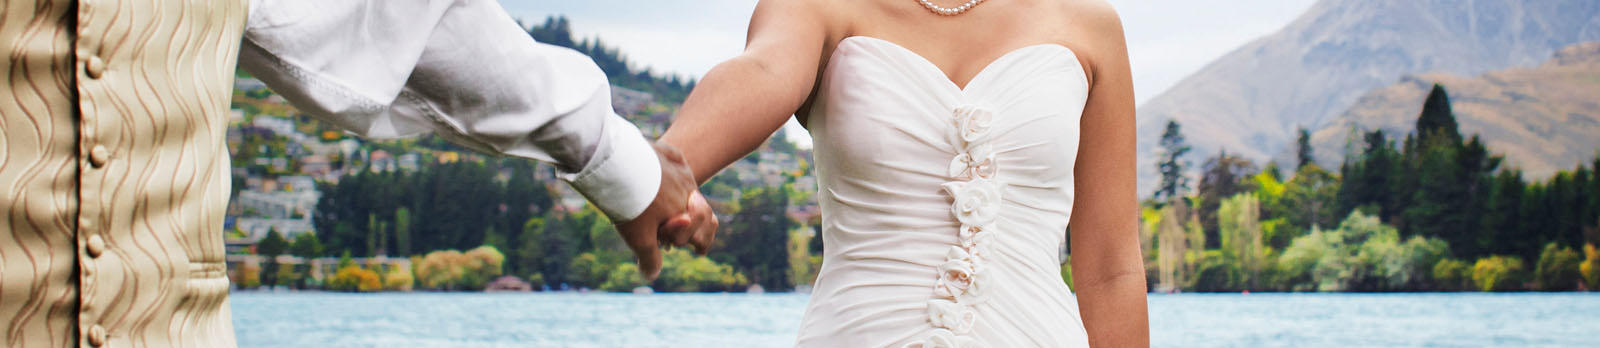 Wedding planning in New Zealand